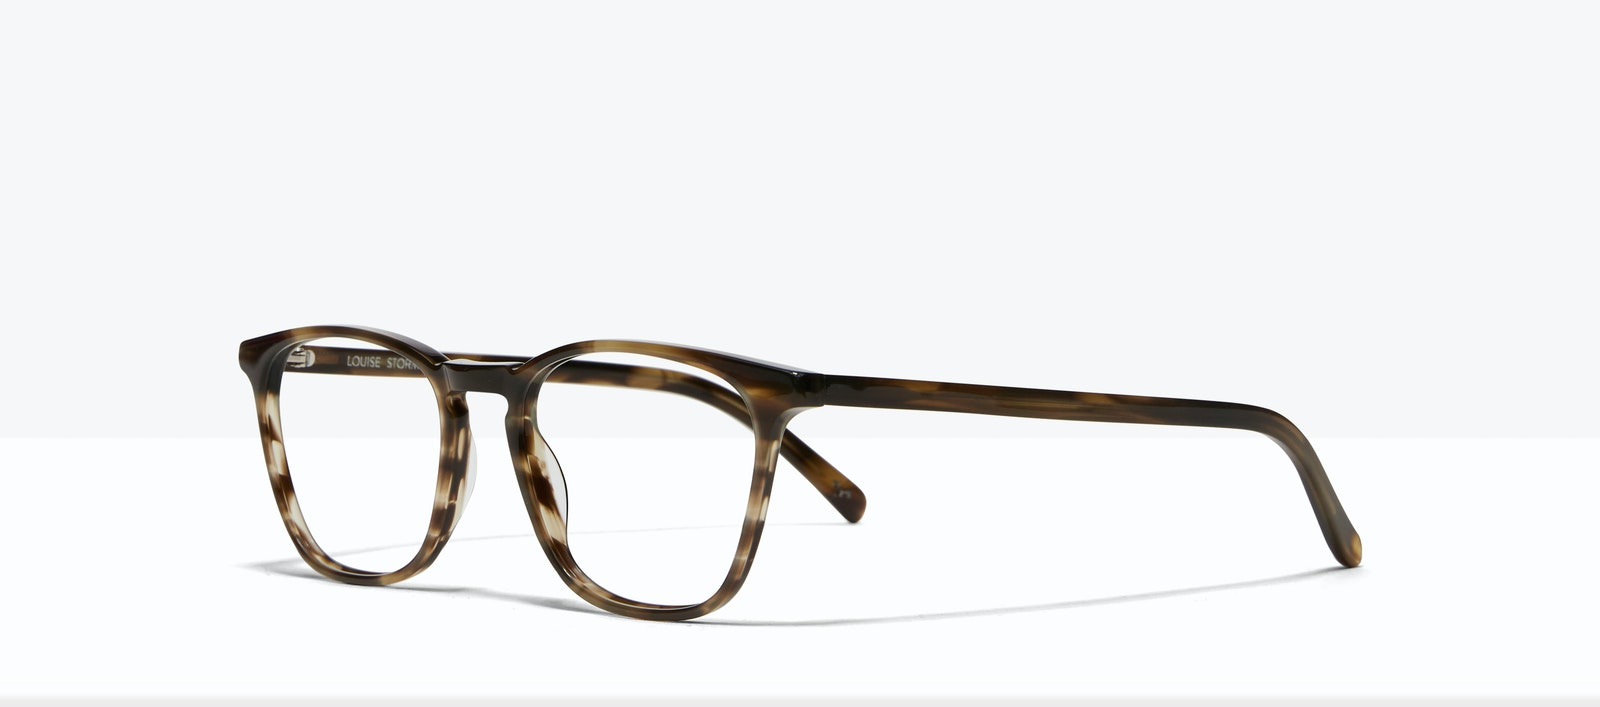 Affordable Fashion Glasses Square Eyeglasses Men Louise Storm Tilt